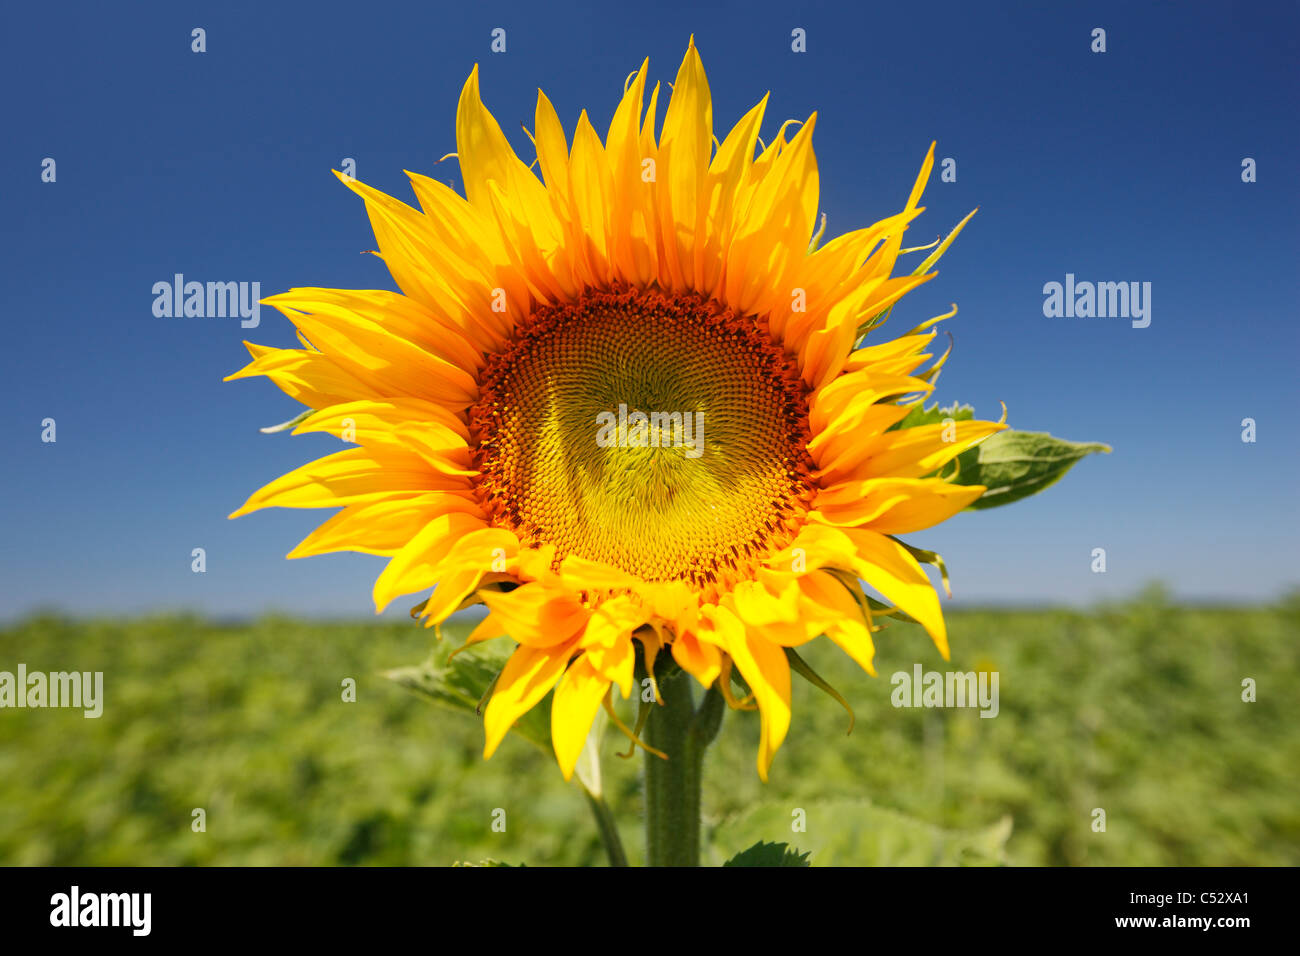 Sunflower in the field - Stock Image